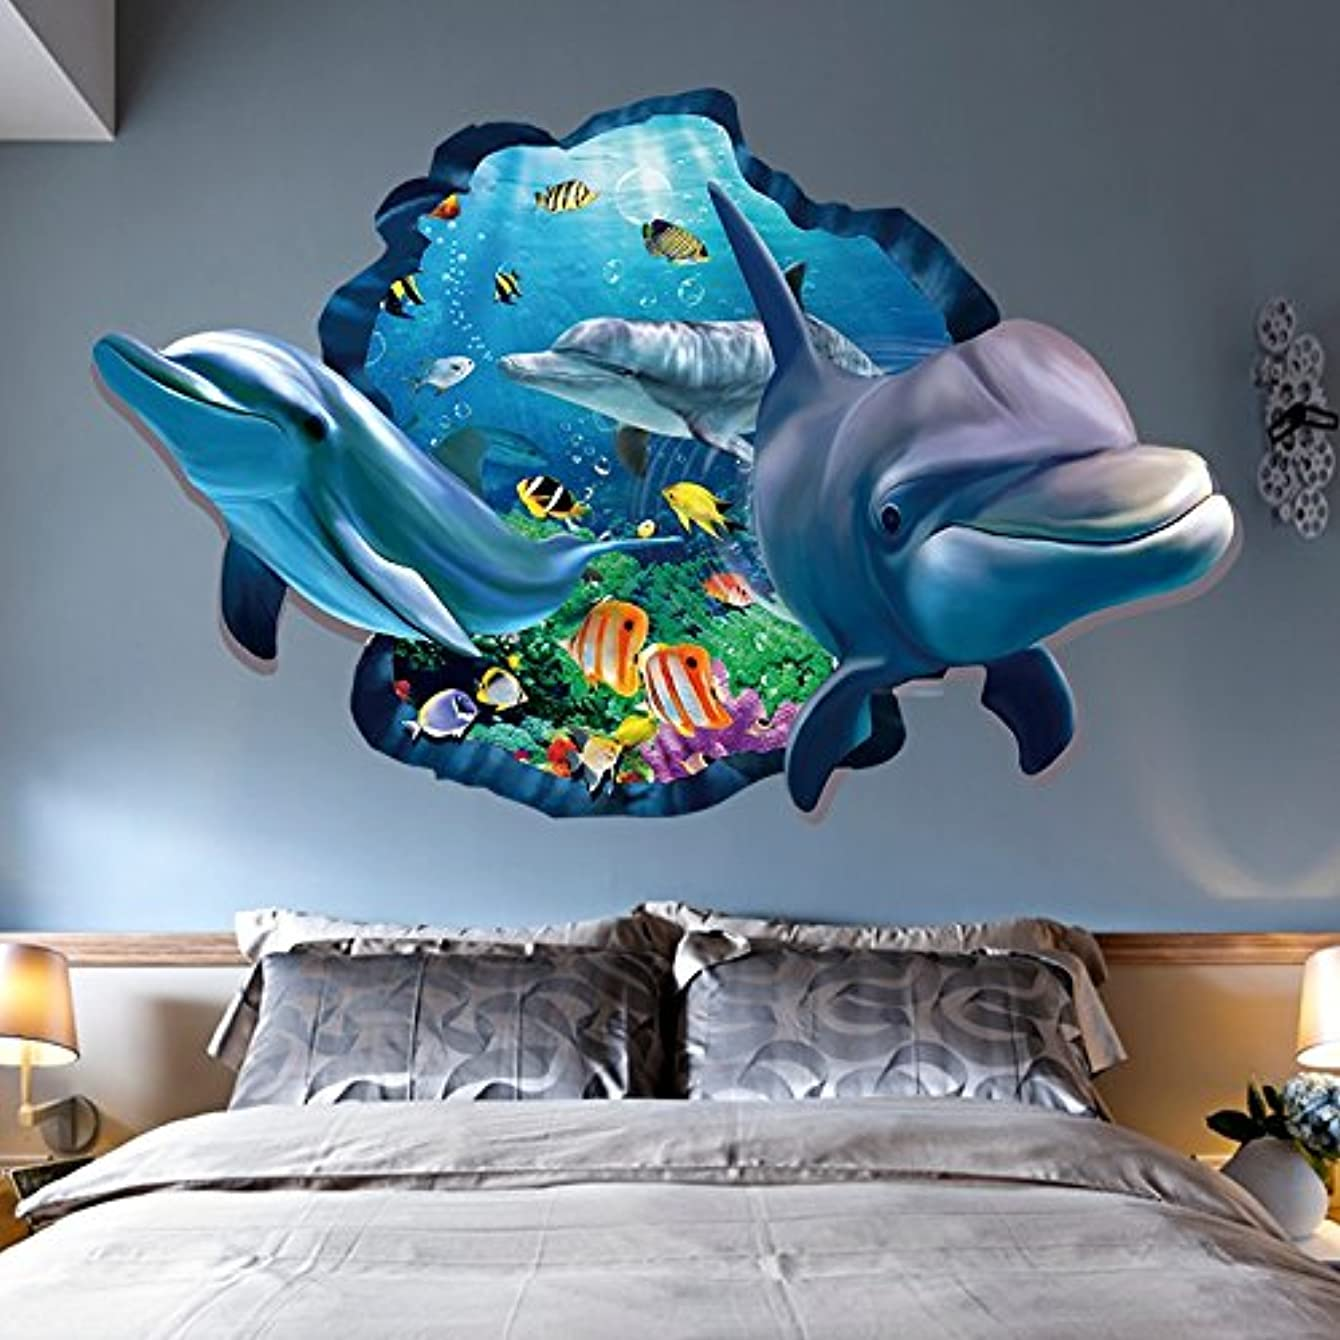 Aibote 3D Wall Decal Dolphin Mural Home Window Ceiling Decor Removable Stickers Decorations Wallpaper for Boys Girls Room Kids Bedroom Floor Walls Living Room(60x90CM)